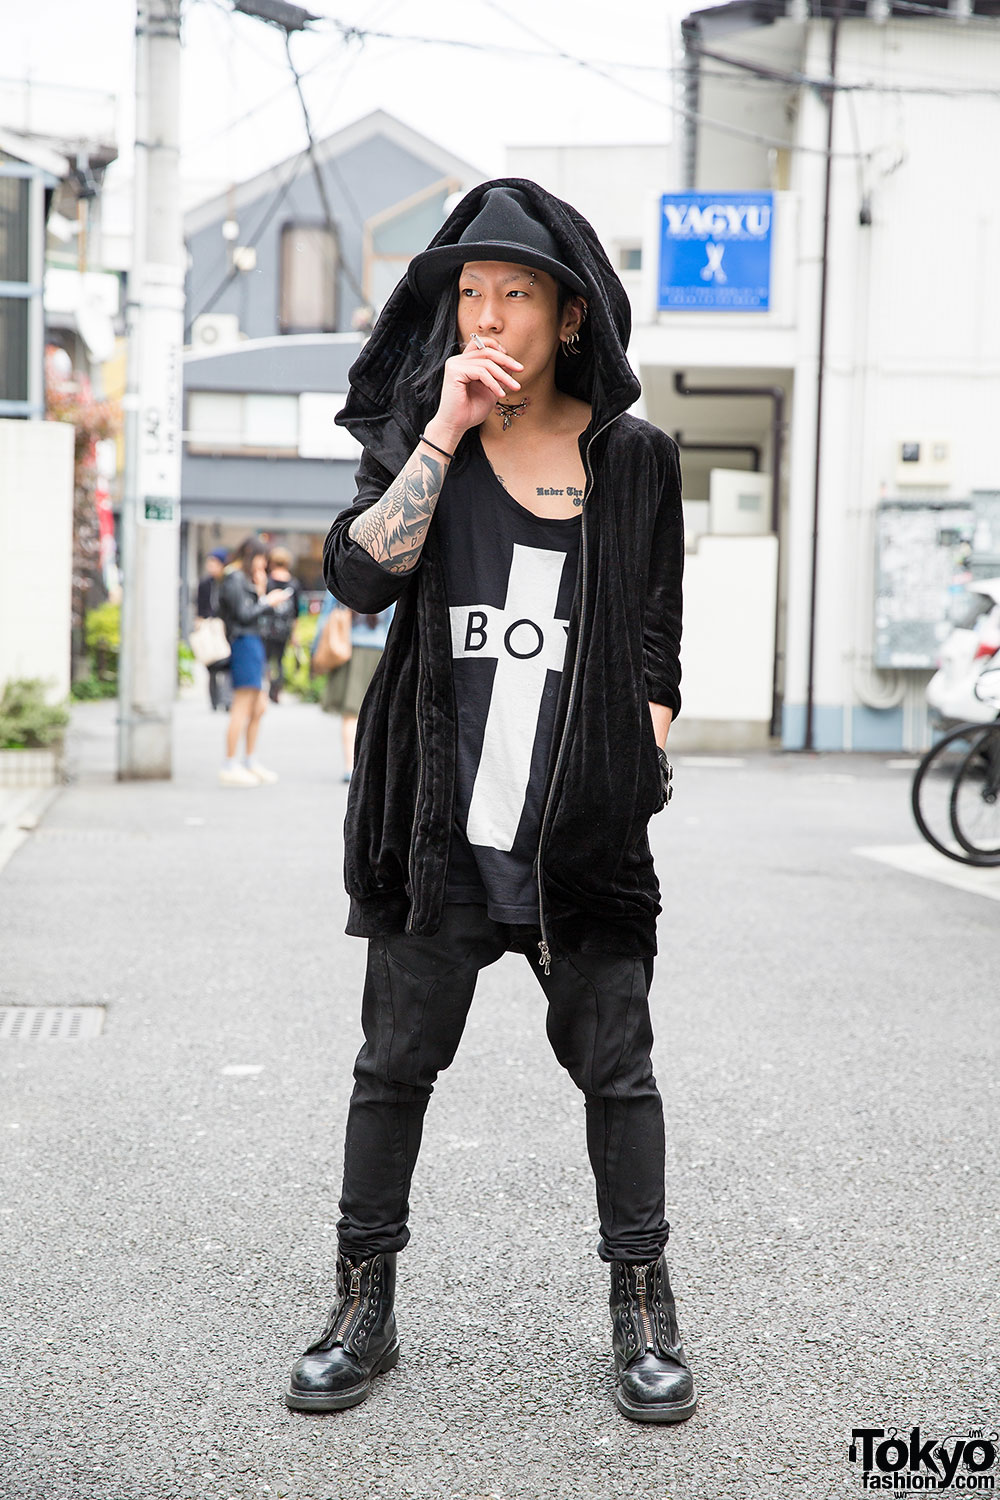 Harajuku Guy 39 S Piercings Tattoos W Julius Boy London Oz Abstract Dr Martens